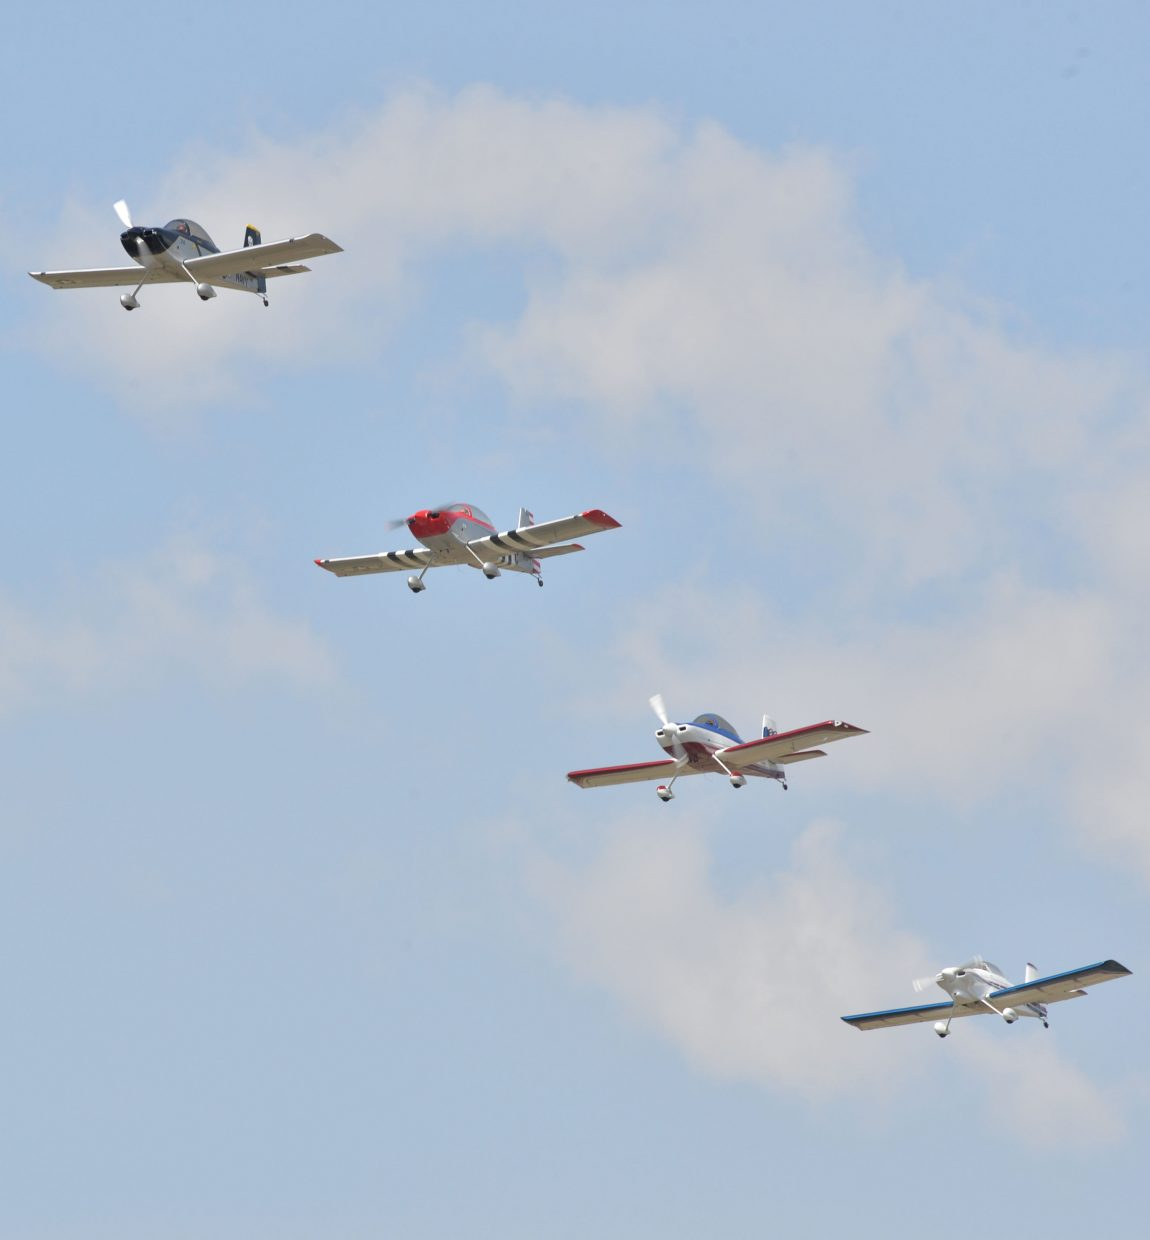 The Rocky Mountain Renegades fly in formation high above the Steamboat Springs Airport on Friday morning while practicing for this week's air show, which will be a part of the annual Wild West Air Fest.